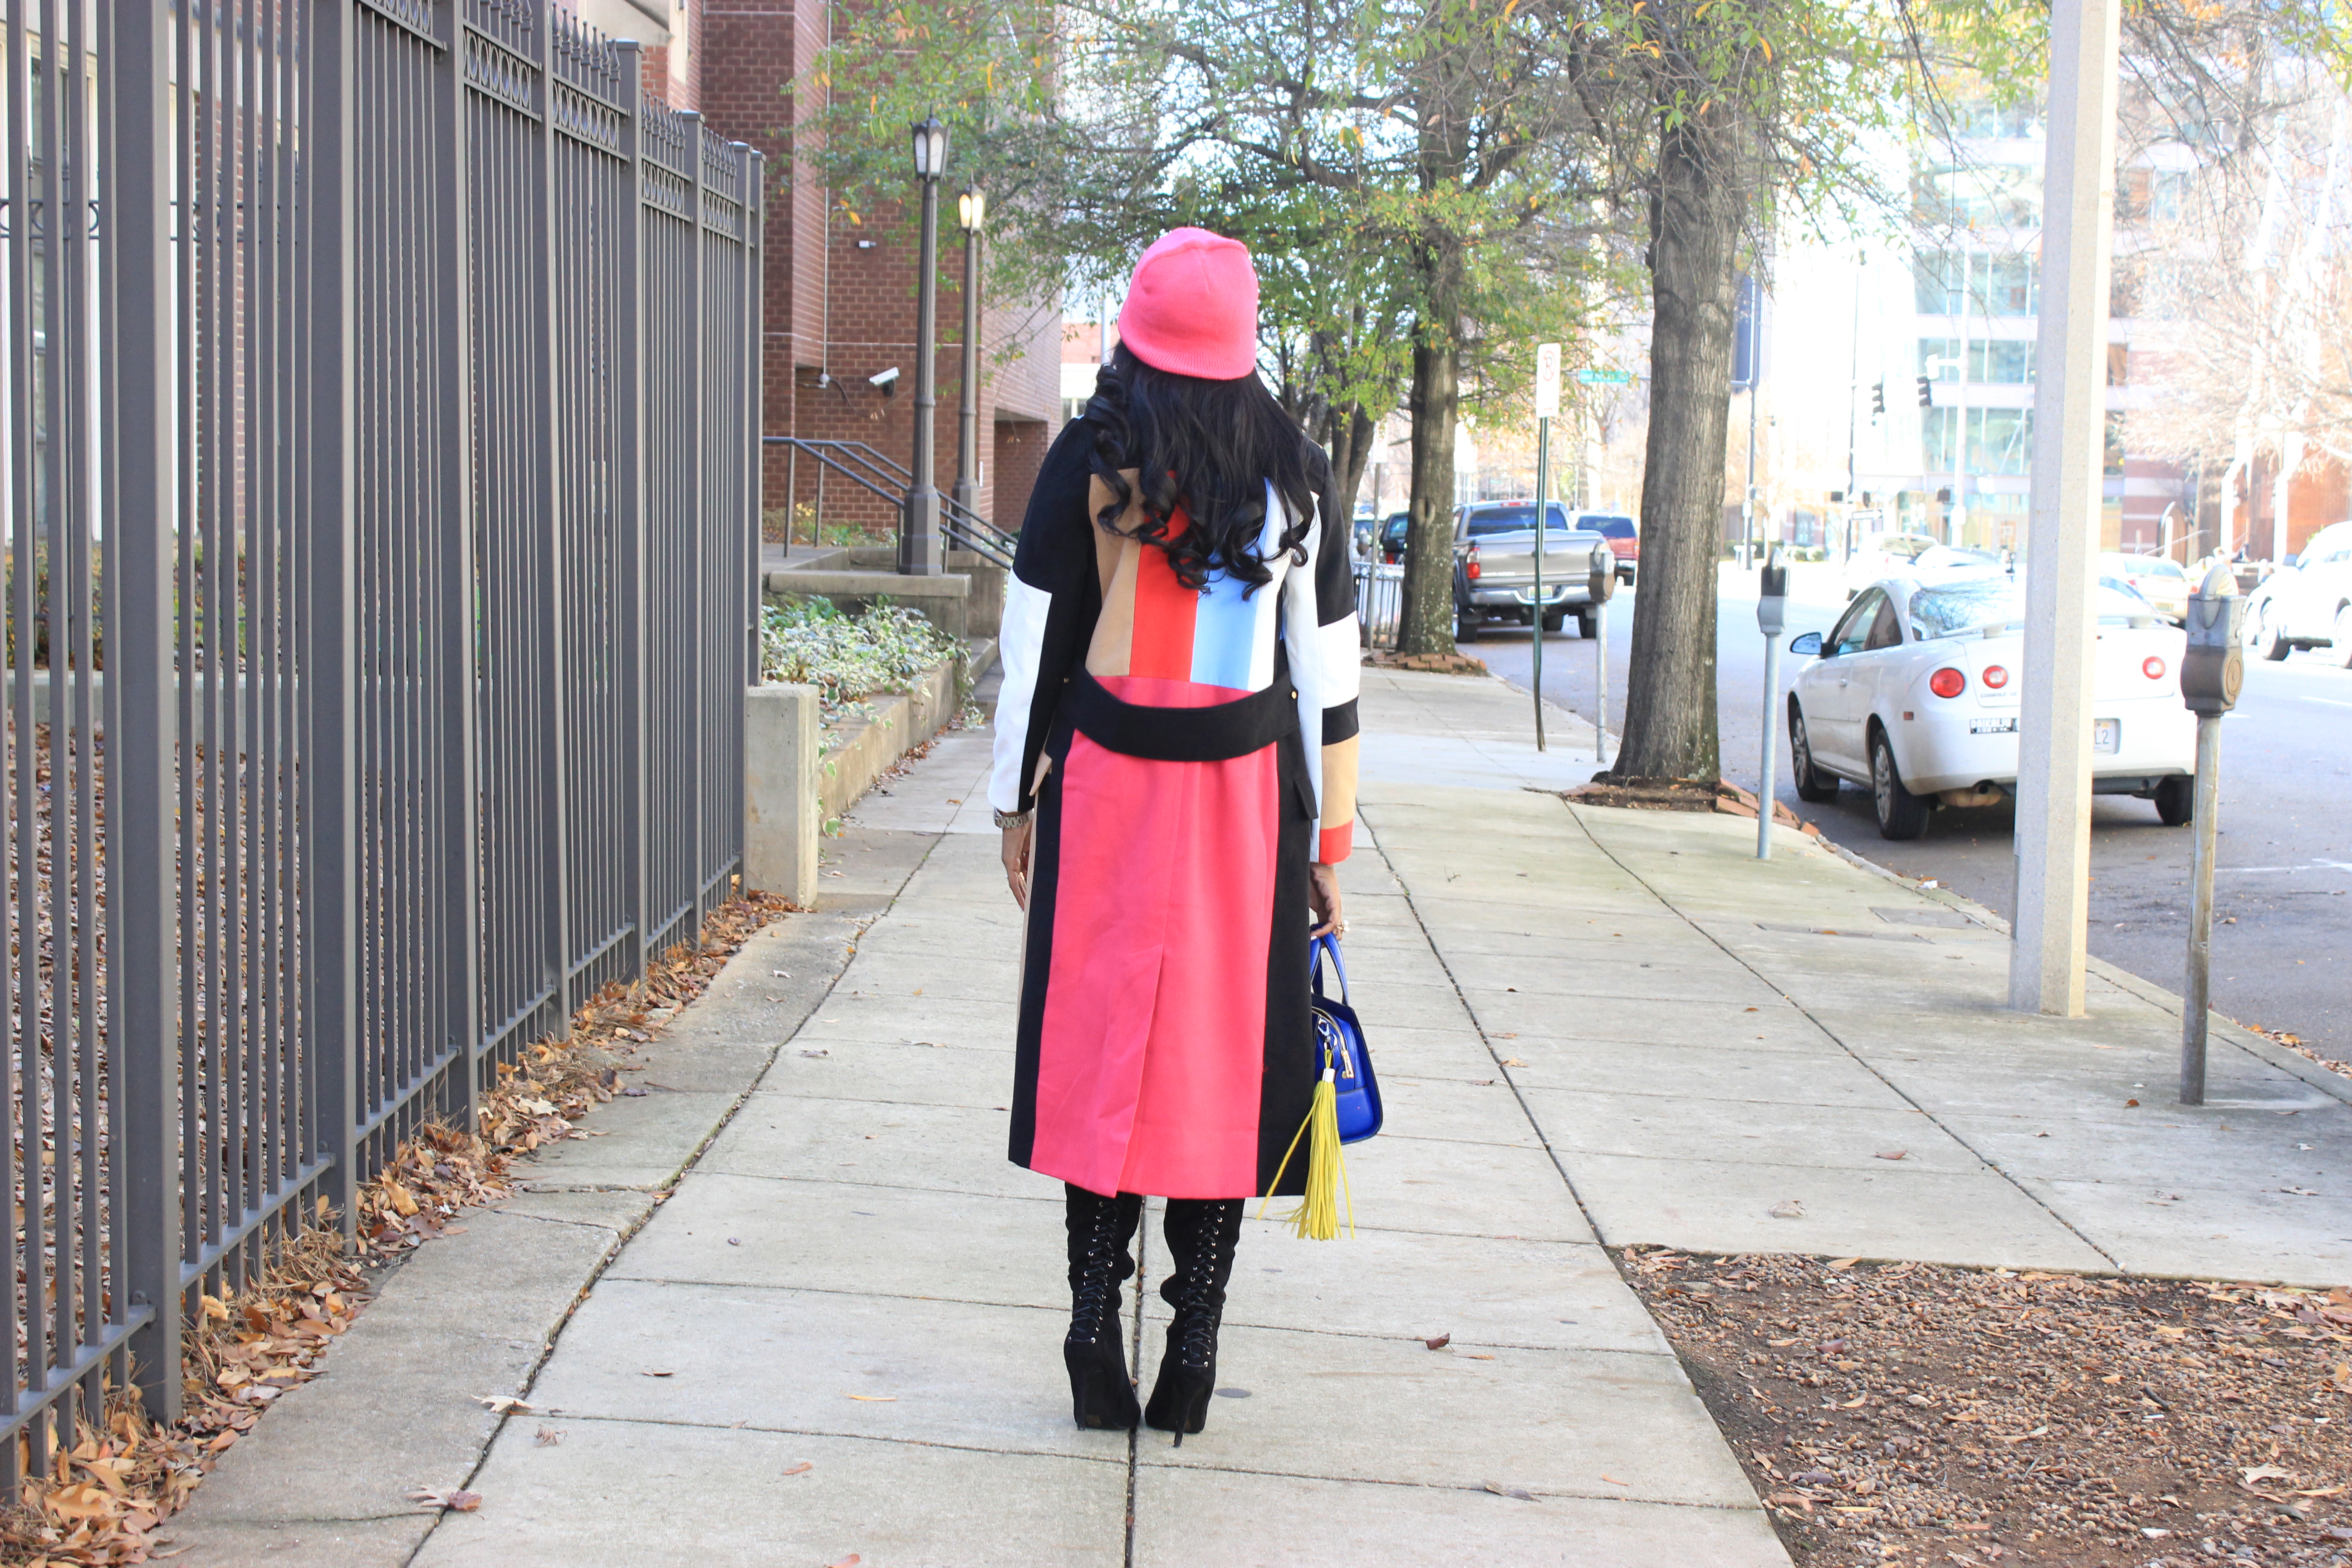 Style-Files-SheIn-Multicolor-Lapel-Color-Block-Coat-Forever21-Faux-Leather-studded-mini-skirt-black-sheer-turtleneck-Truffle-Collection-Over- The-Knee-Lace-Up-Back-High-Heeled-Boots-Hot-Pink-Beanie-Winter-Coat-Style-Guide-Oohlalablog-16